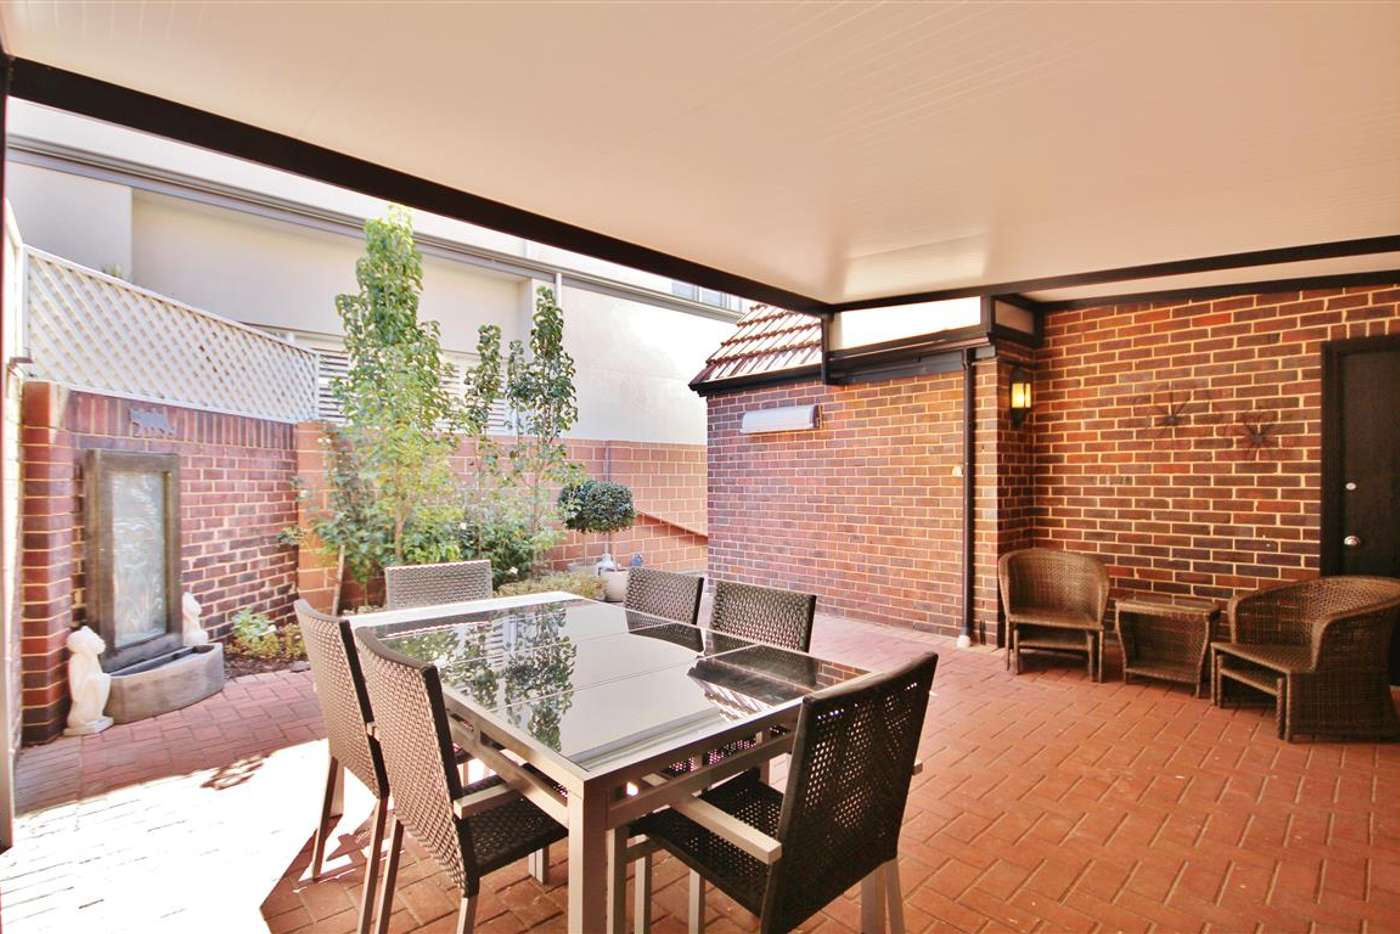 Seventh view of Homely townhouse listing, 1/15 KAROO STREET, South Perth WA 6151